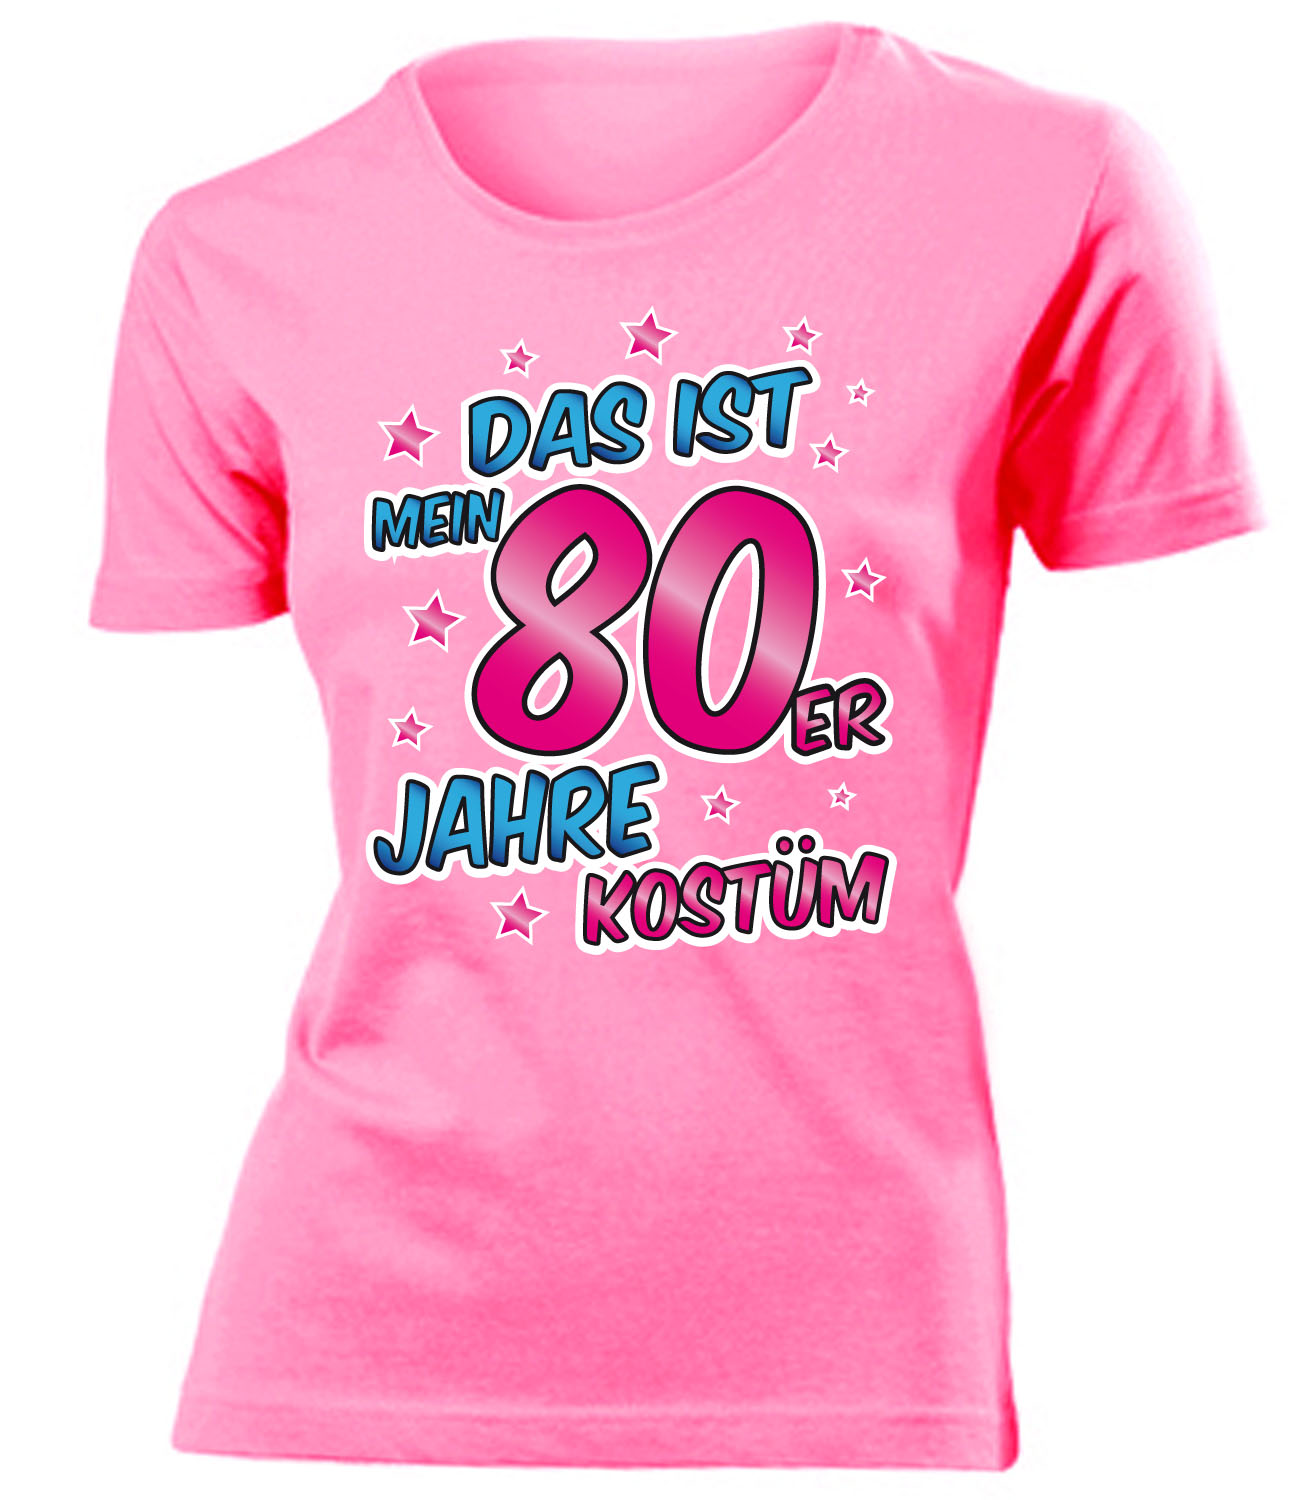 karnevalskost m das ist mein 80er jahre kost m t shirt. Black Bedroom Furniture Sets. Home Design Ideas